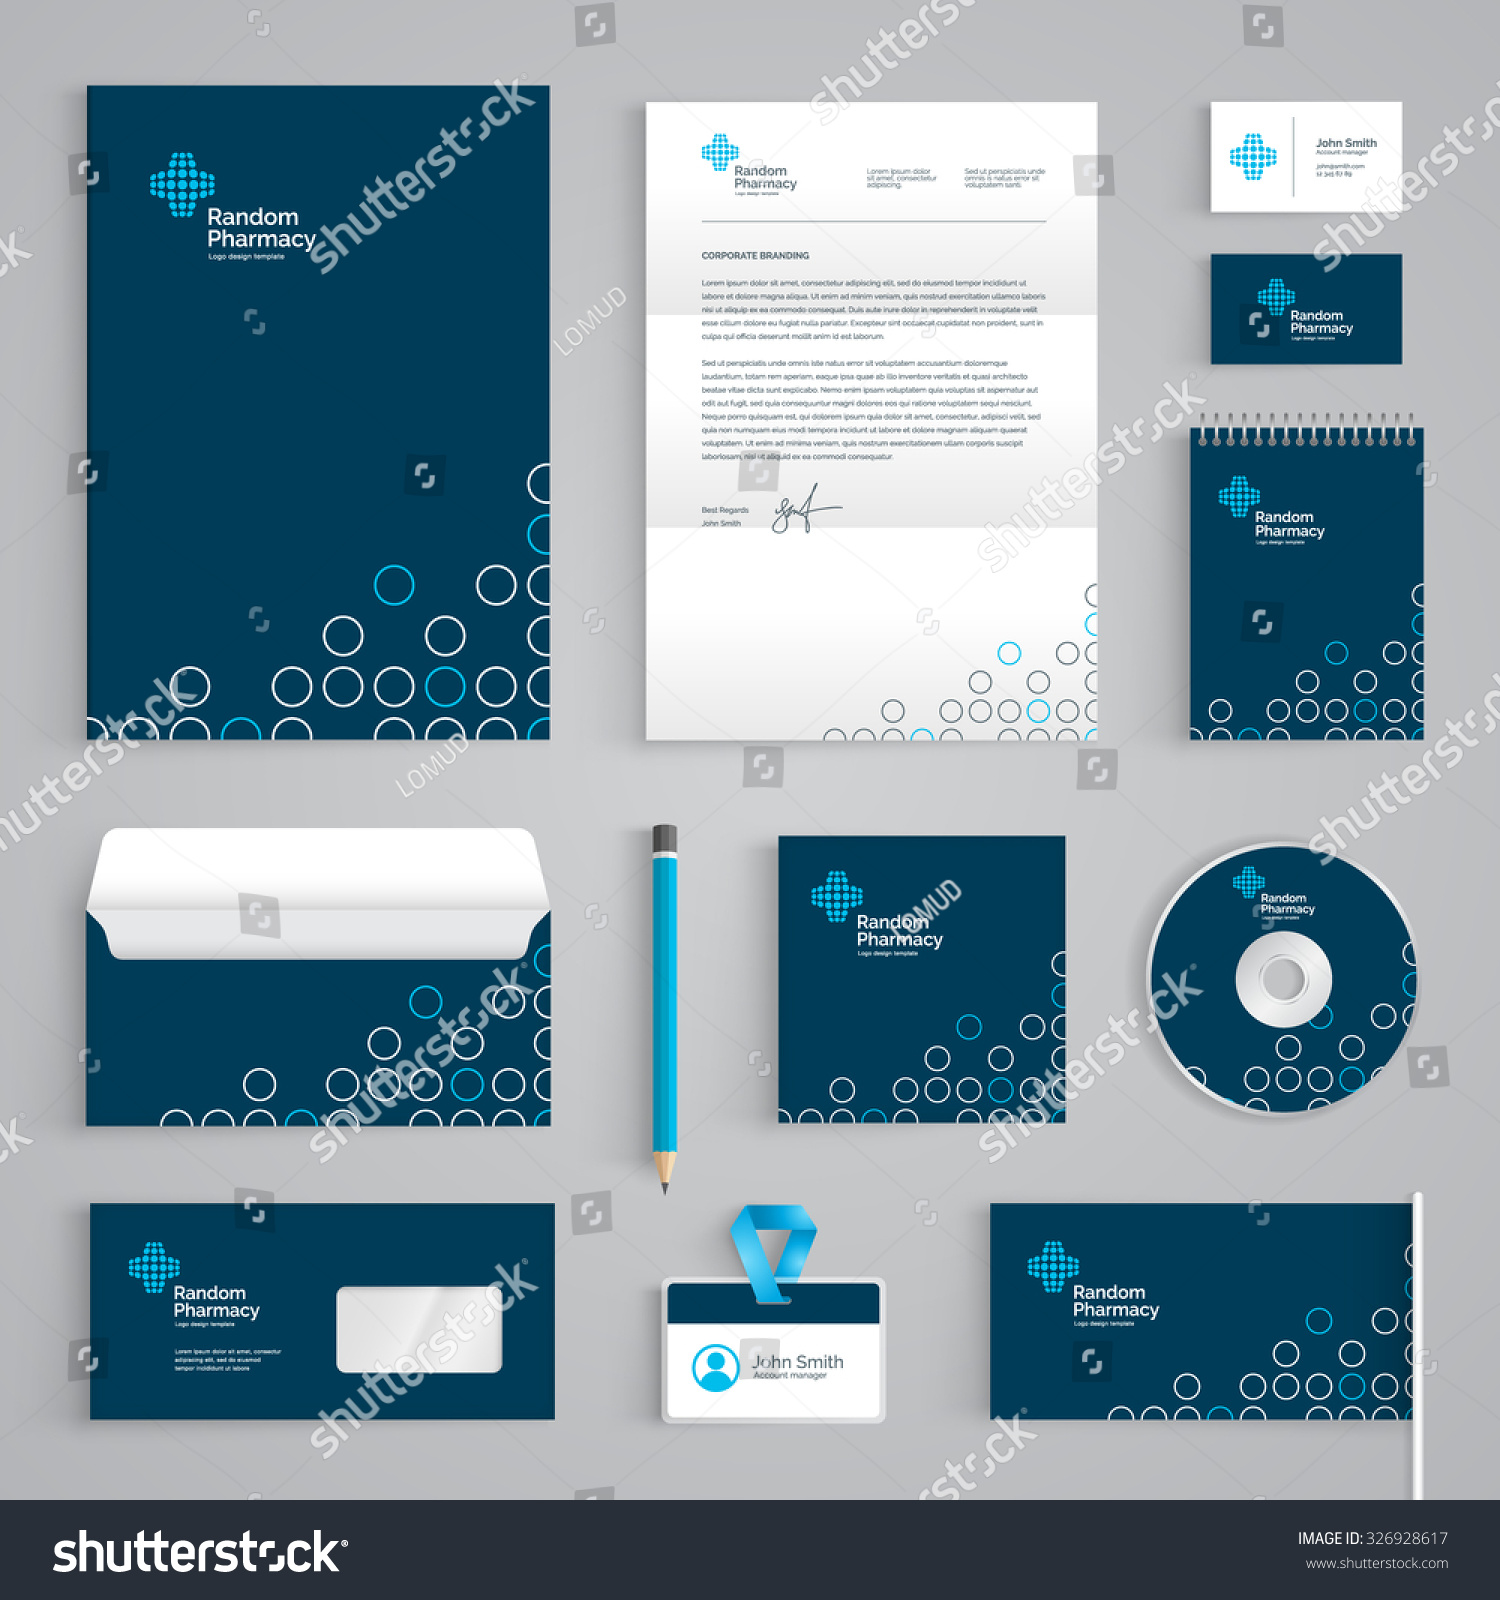 Corporate Identity Medical Branding Template Abstract Stock Vector